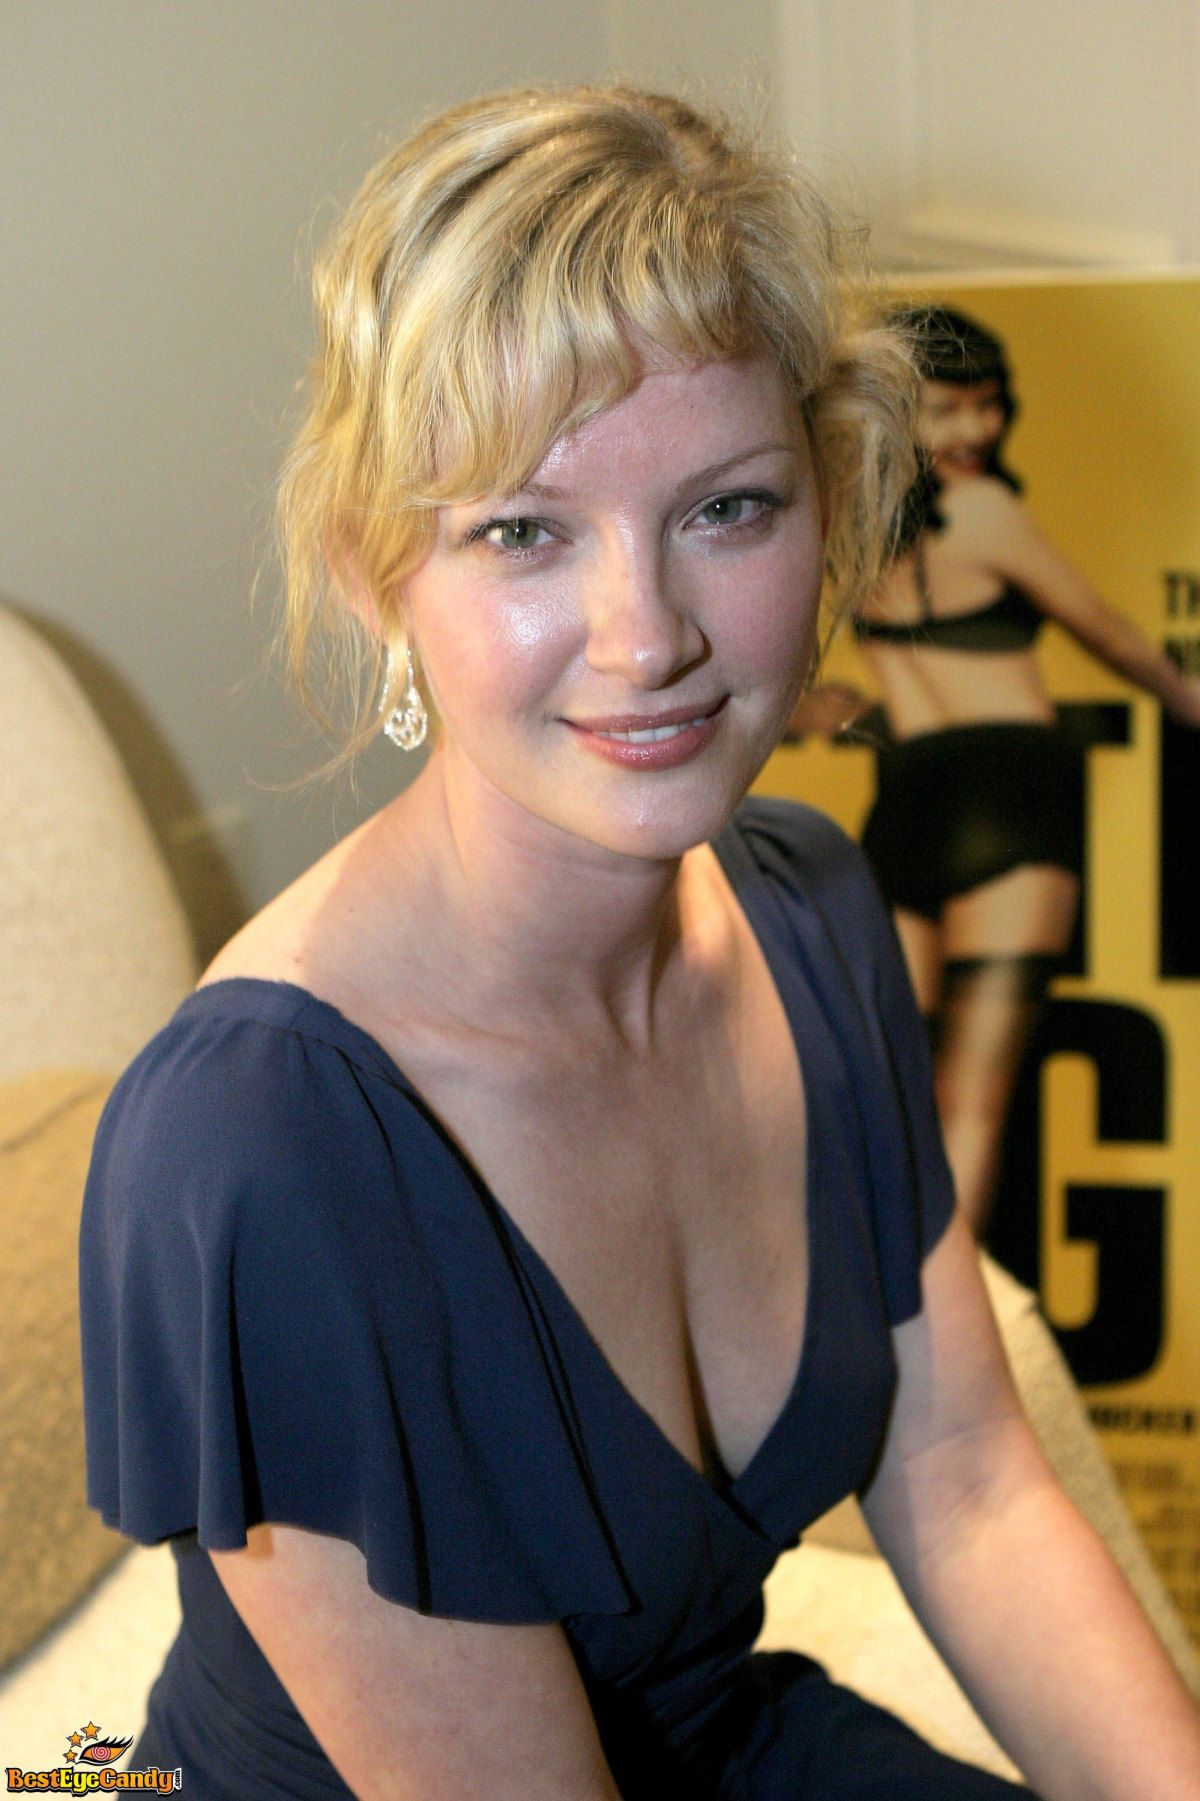 gretchen mol husbandgretchen mol chance, gretchen mol filmography, gretchen mol hugh laurie, gretchen mol, gretchen mol imdb, gretchen mol films, gretchen mol harvey weinstein, gretchen mol instagram, gretchen mol dailymotion, gretchen mol husband, gretchen mol ancensored